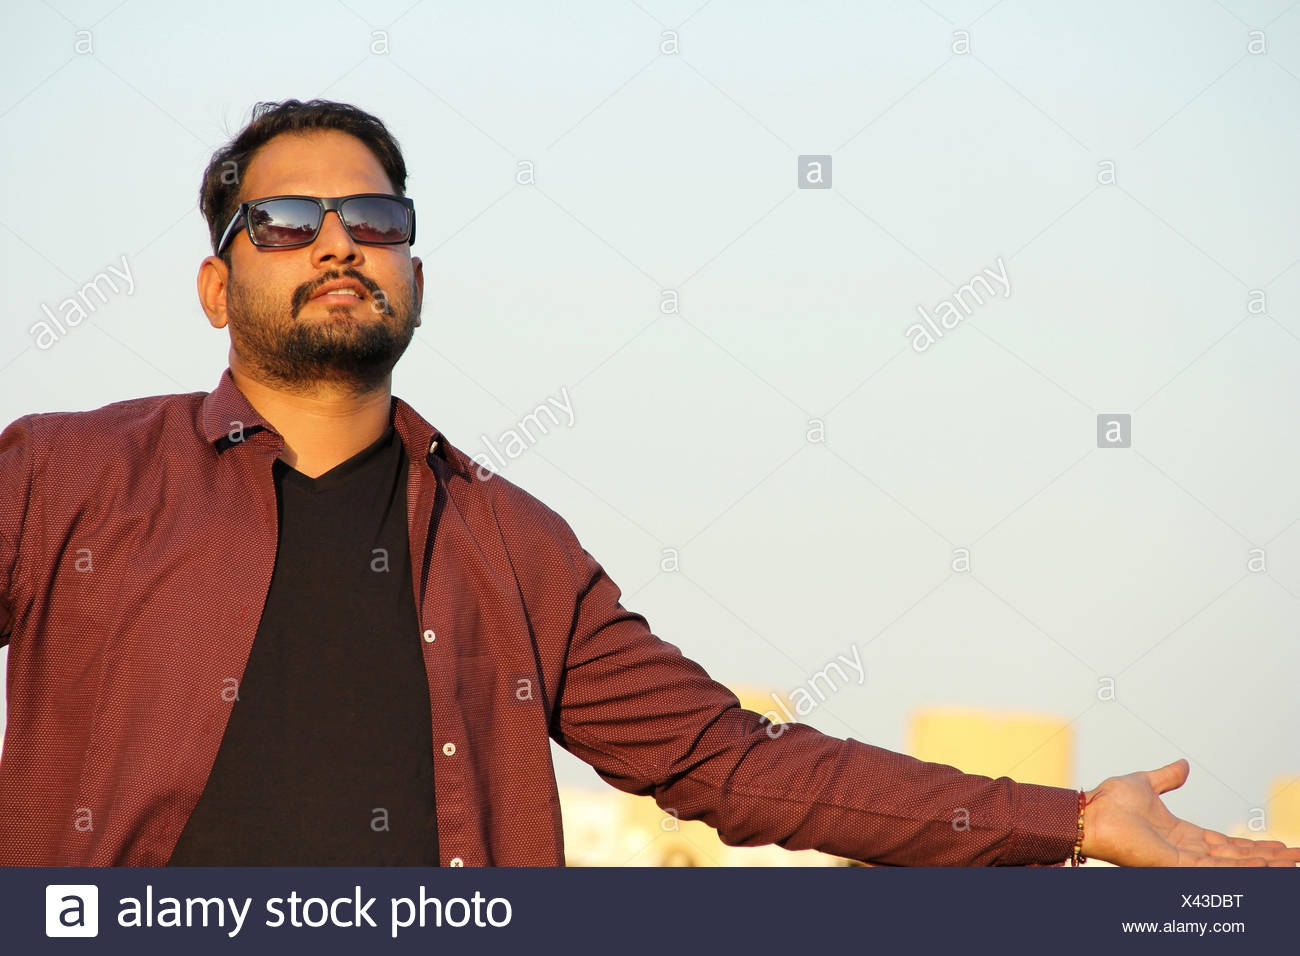 Young Indian man with goggles and outstretched hands as a welcome gesture Stock Photo